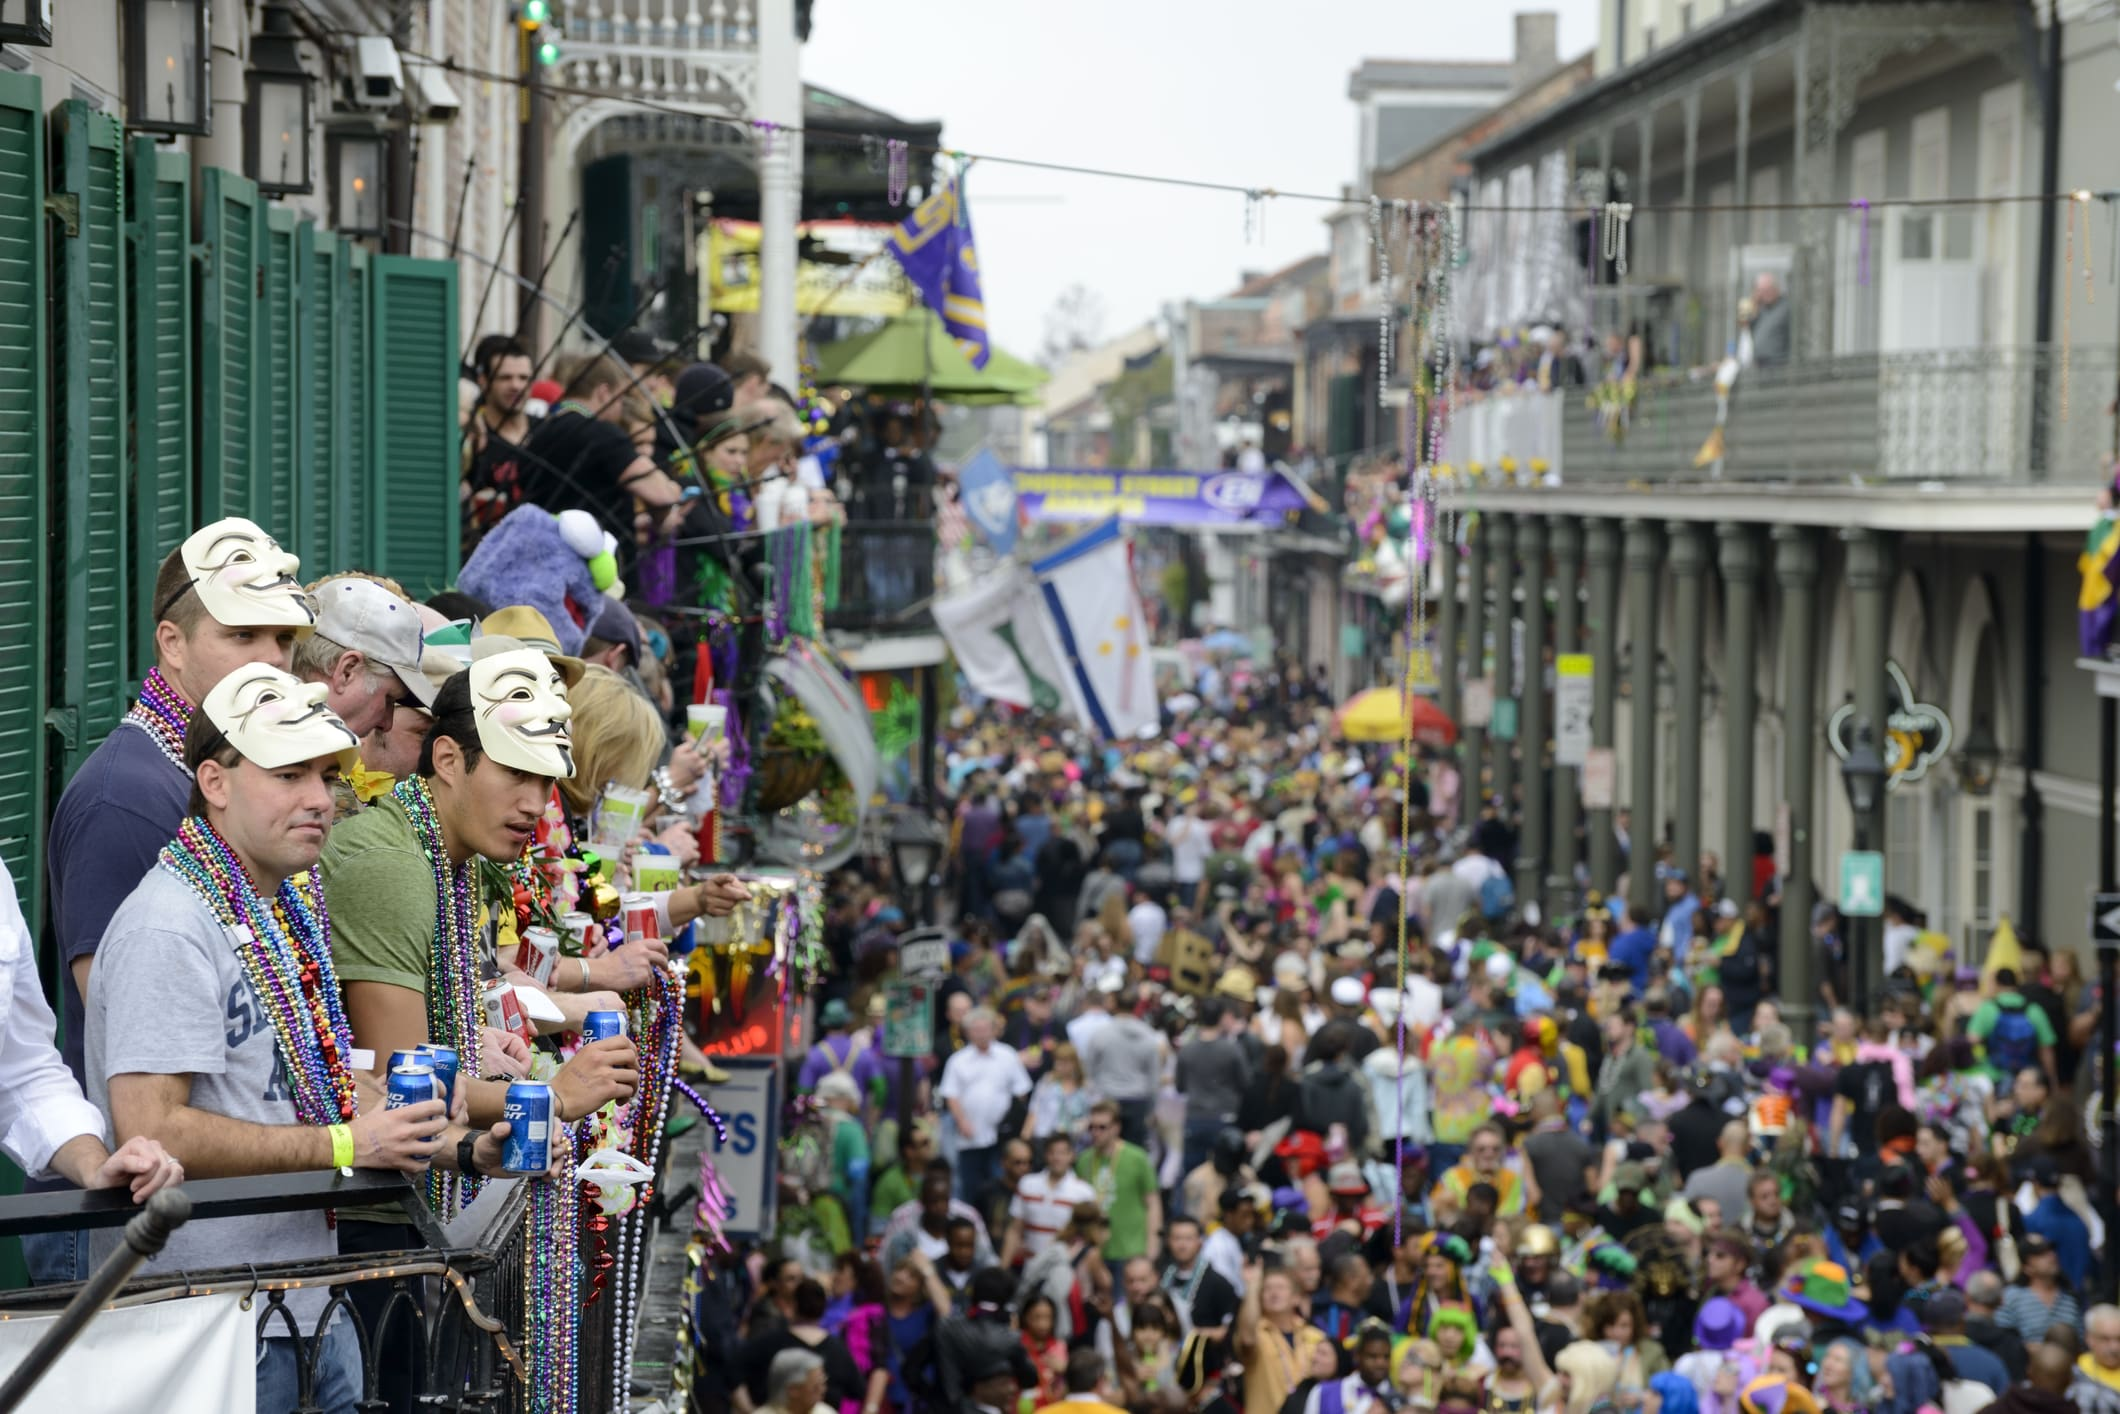 New Orleans Mardi Gras 2020.Here S The True Cost Of Attending Mardi Gras 2019 In New Orleans